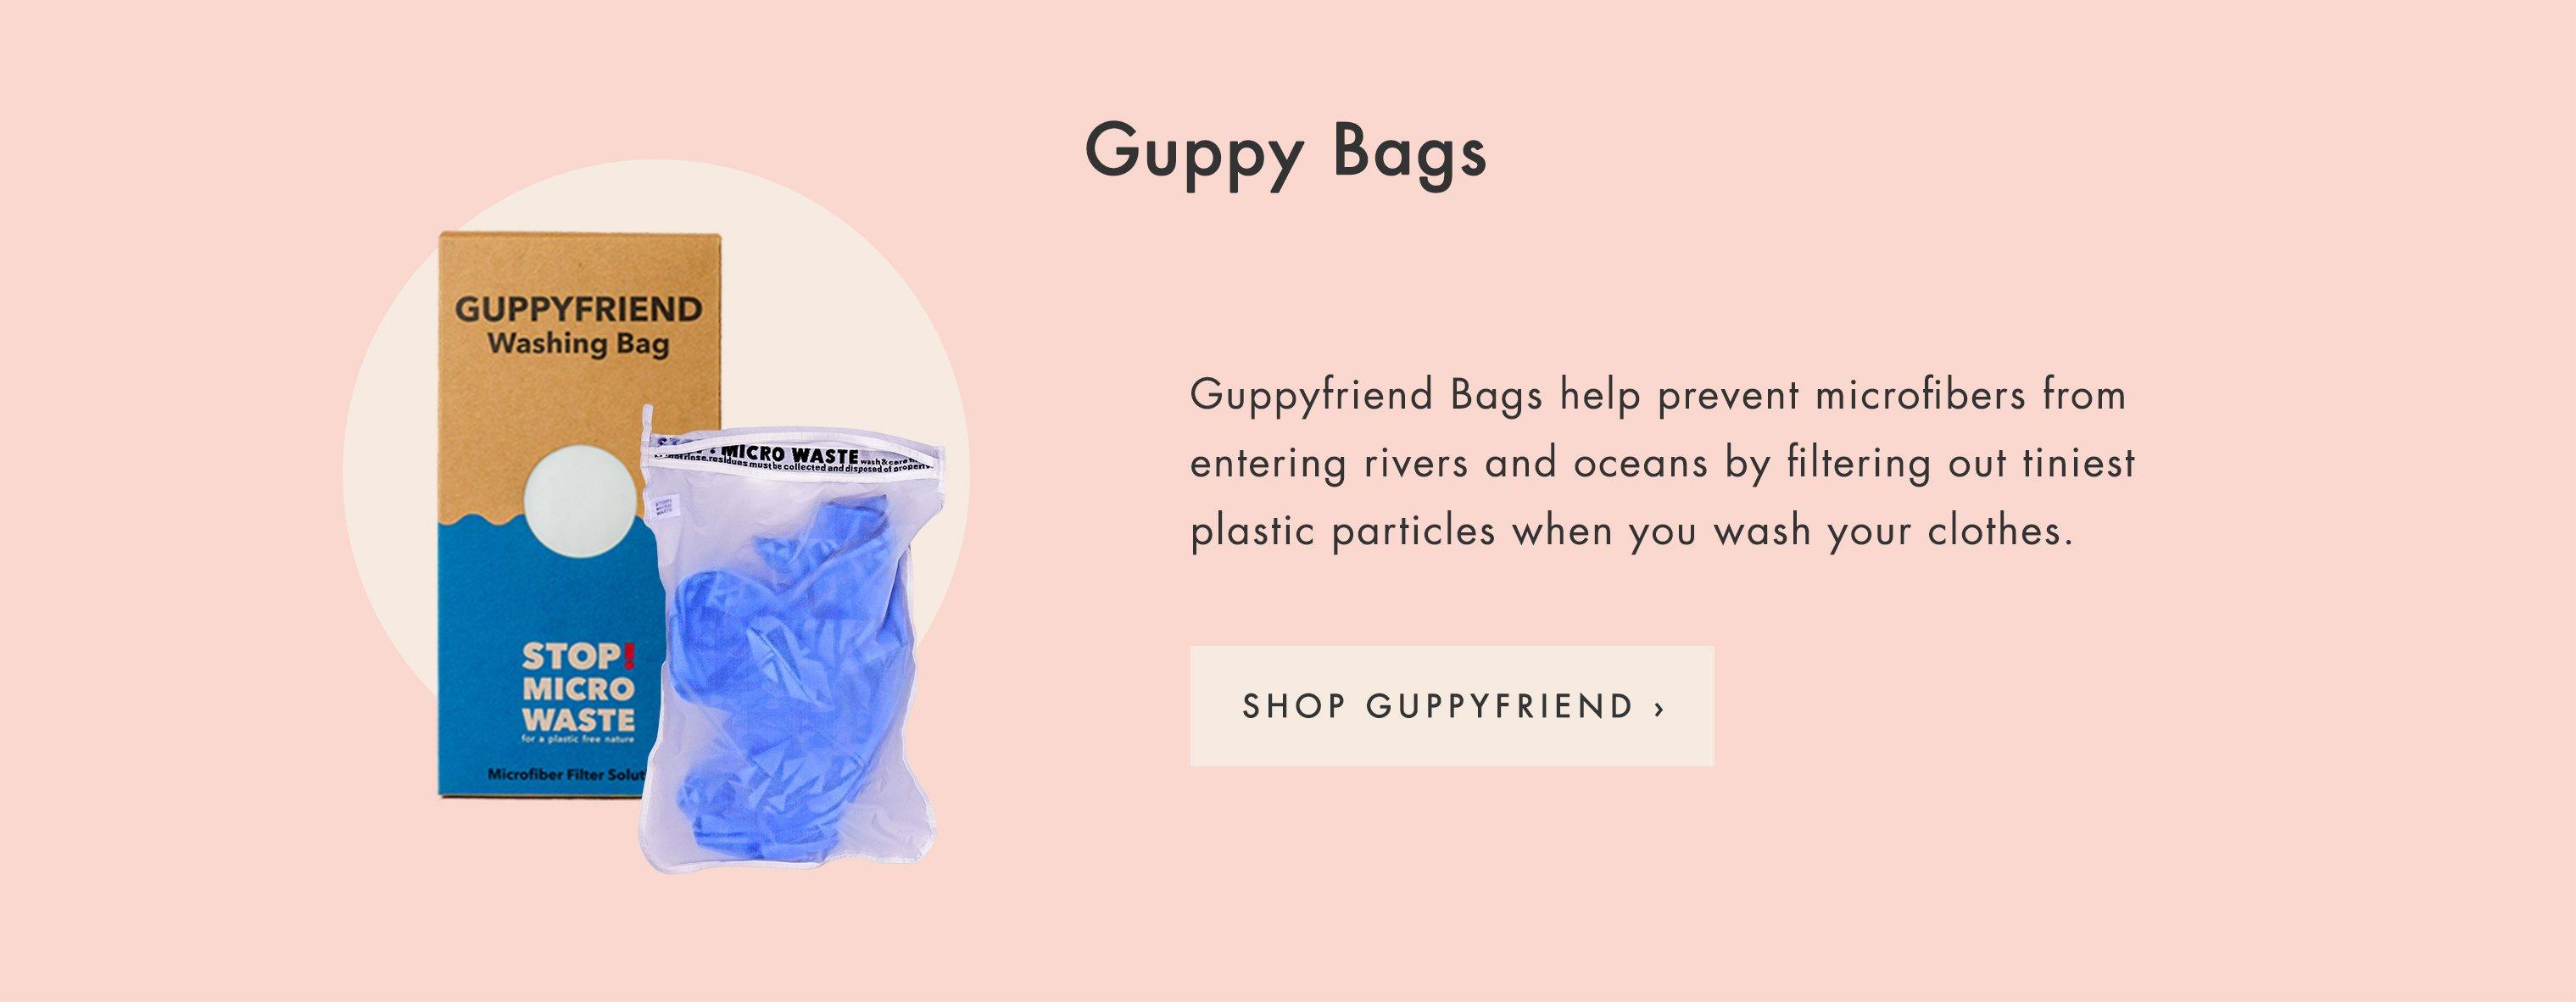 Guppy Bags Image